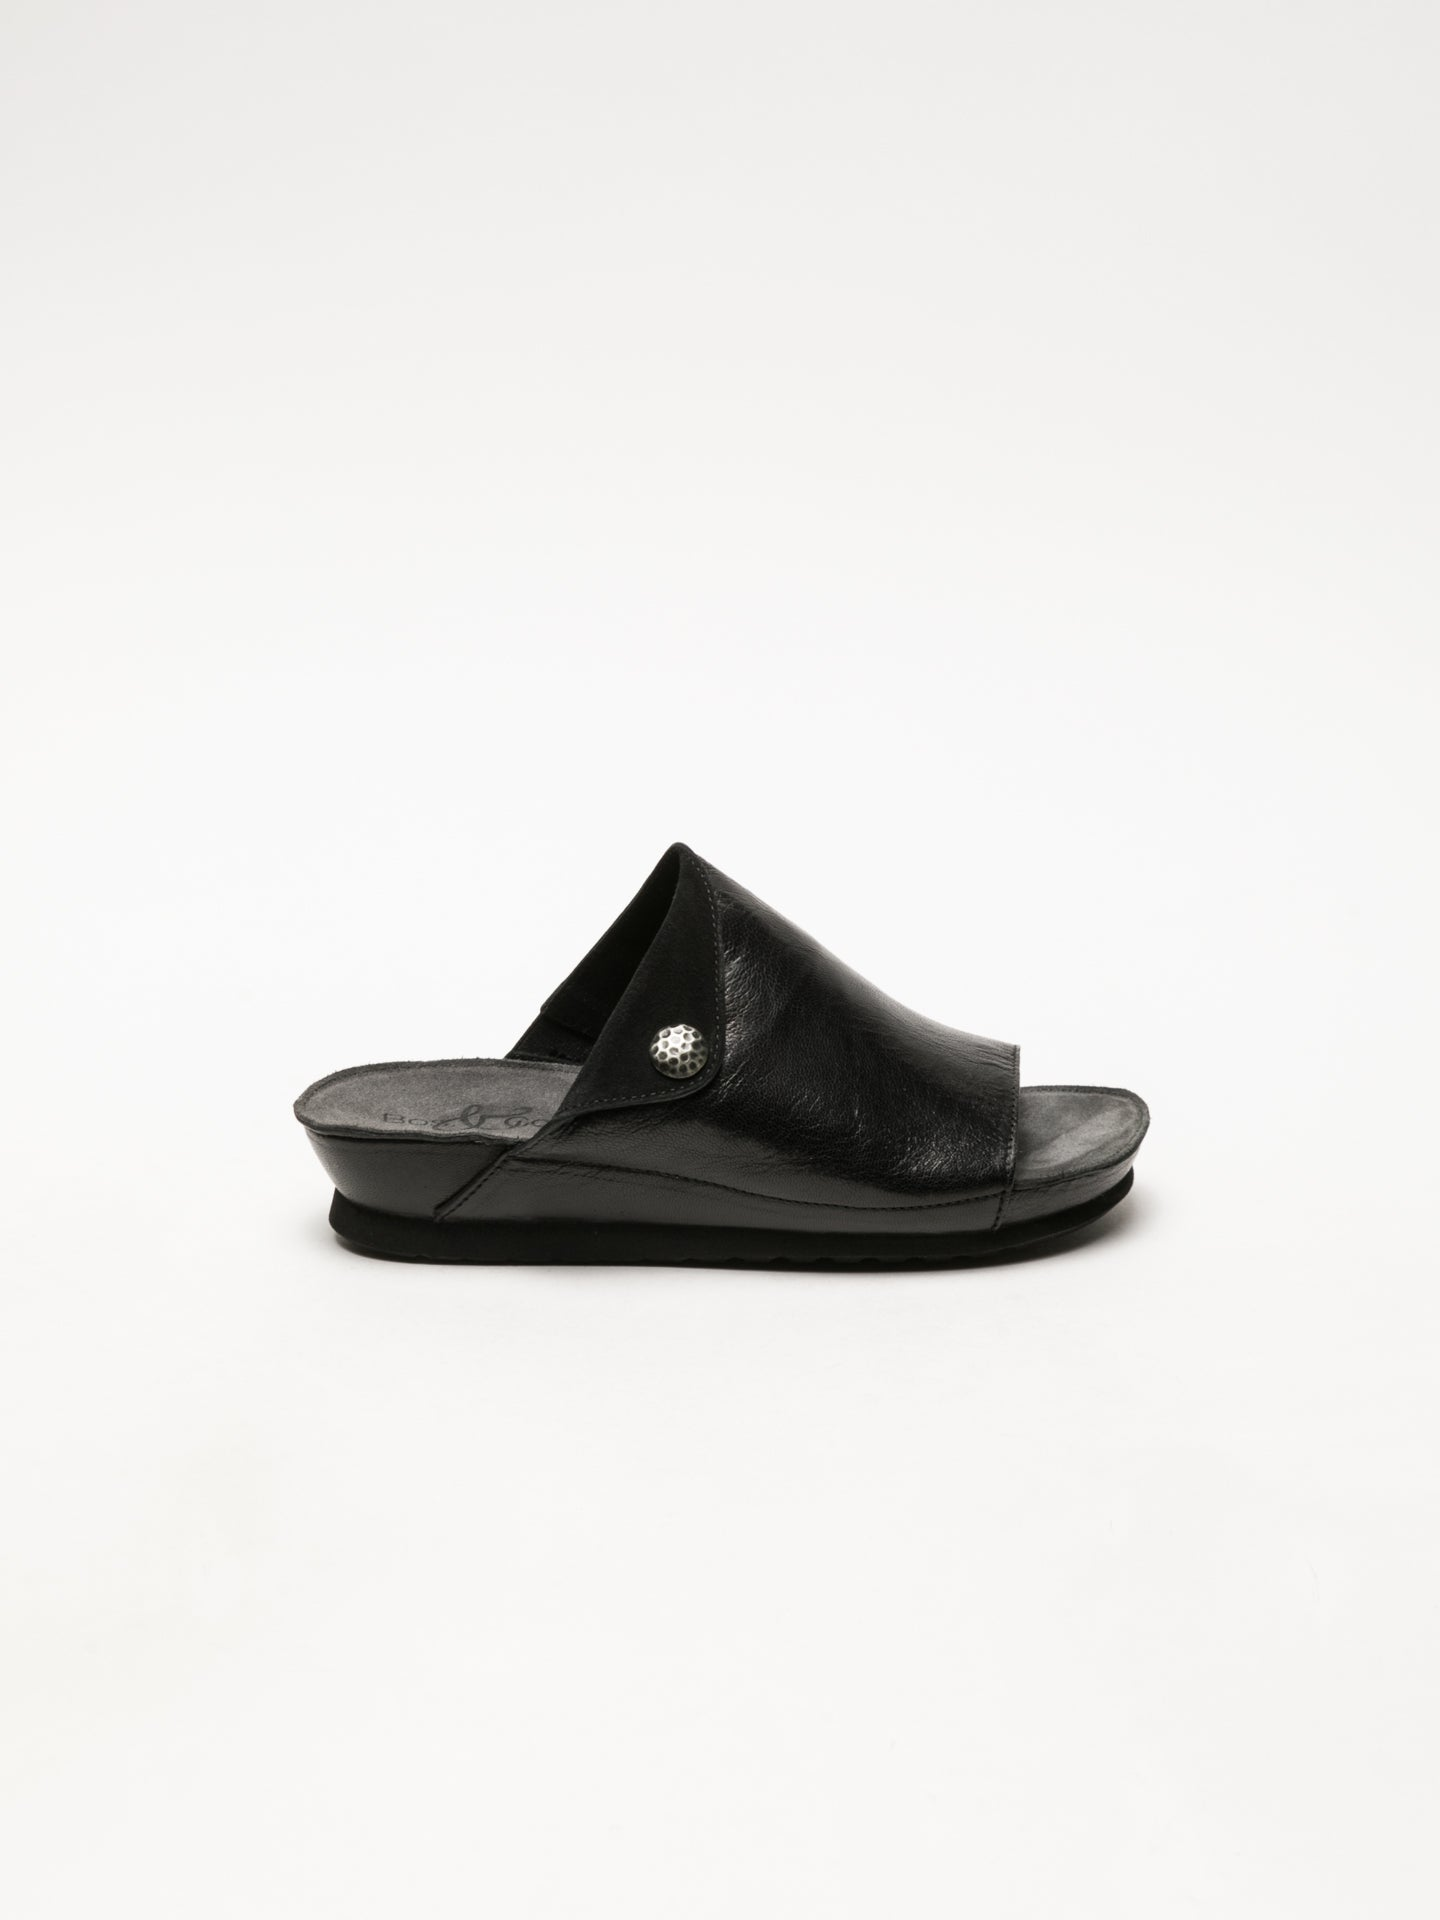 Bos&Co Black Open Toe Mules